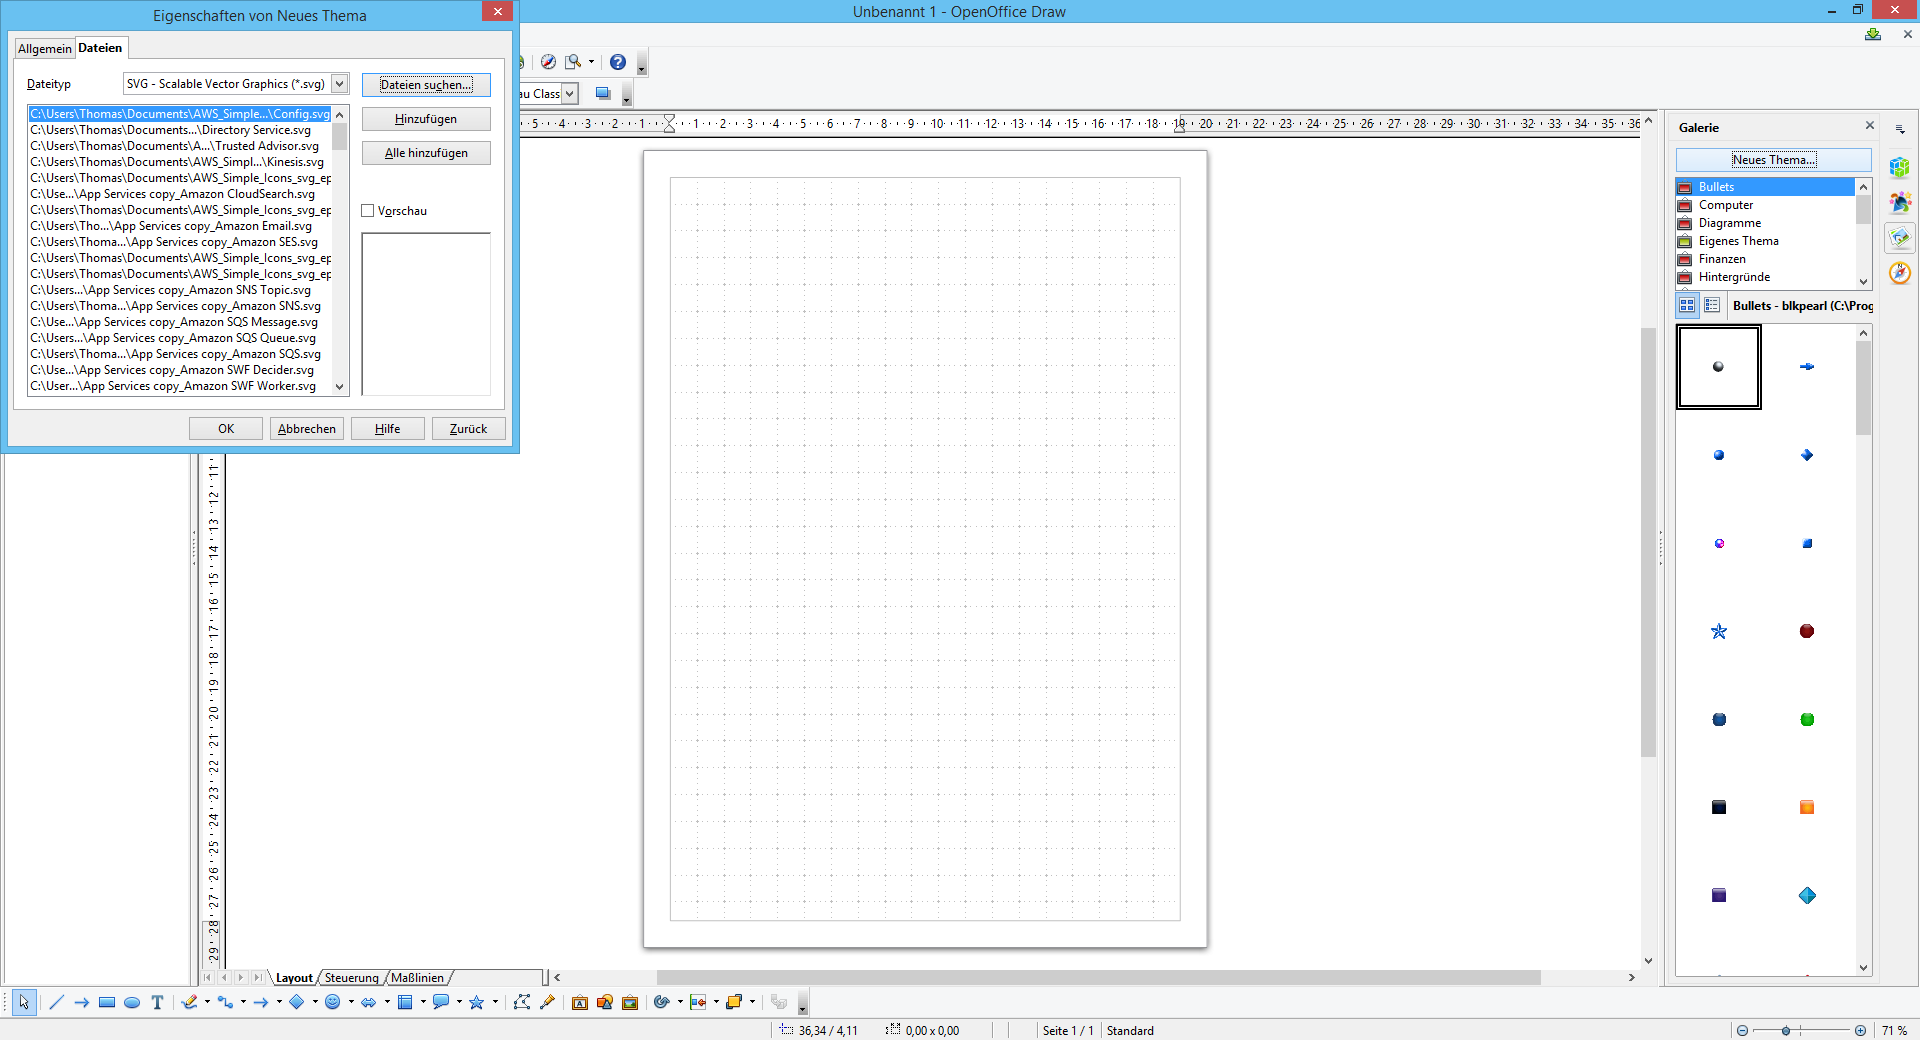 openoffice_add_svg